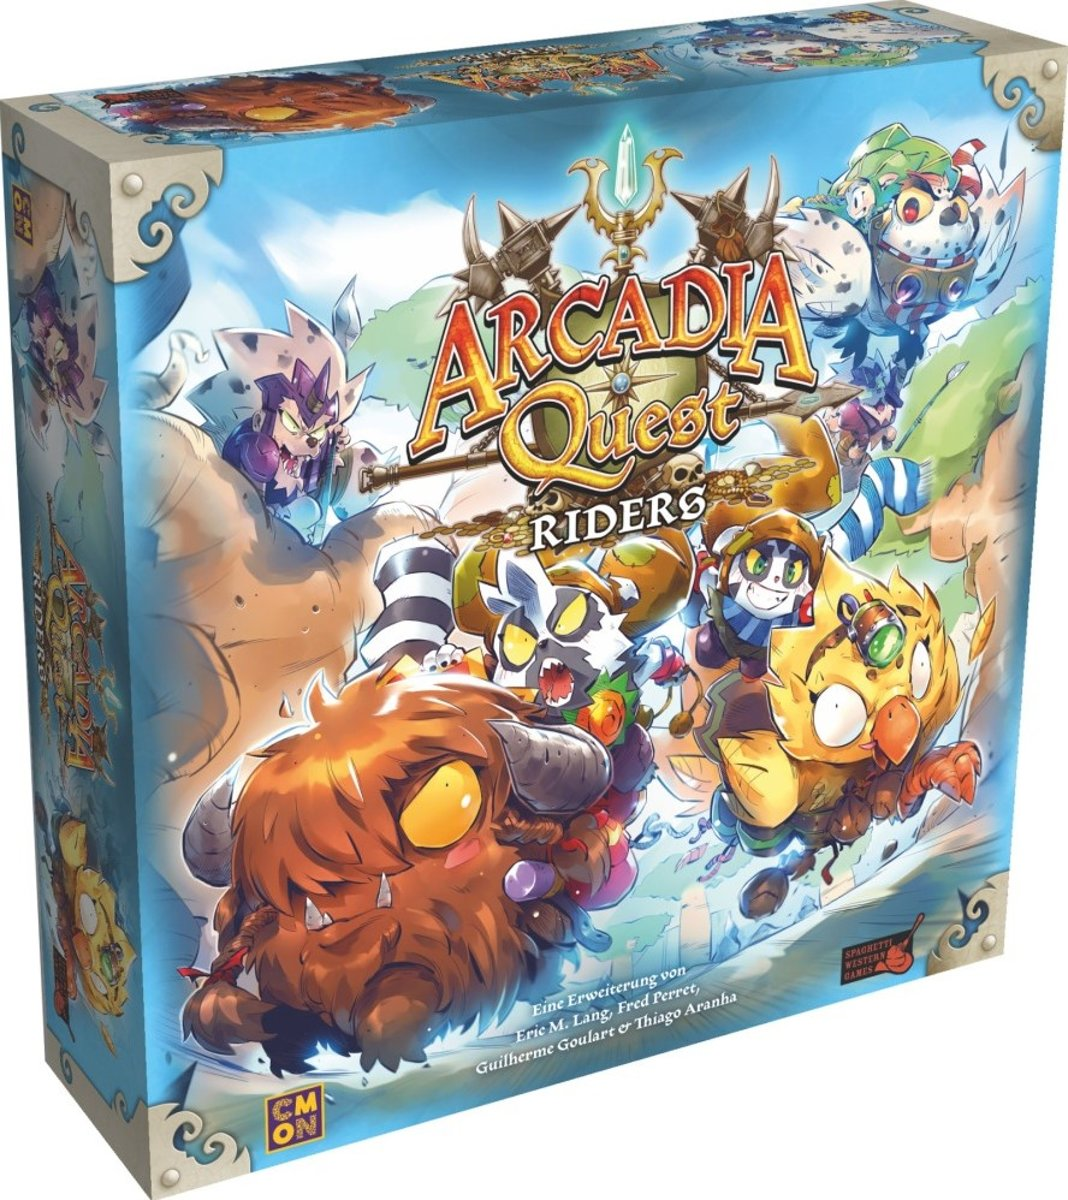 Arcadia quest Riders expansion